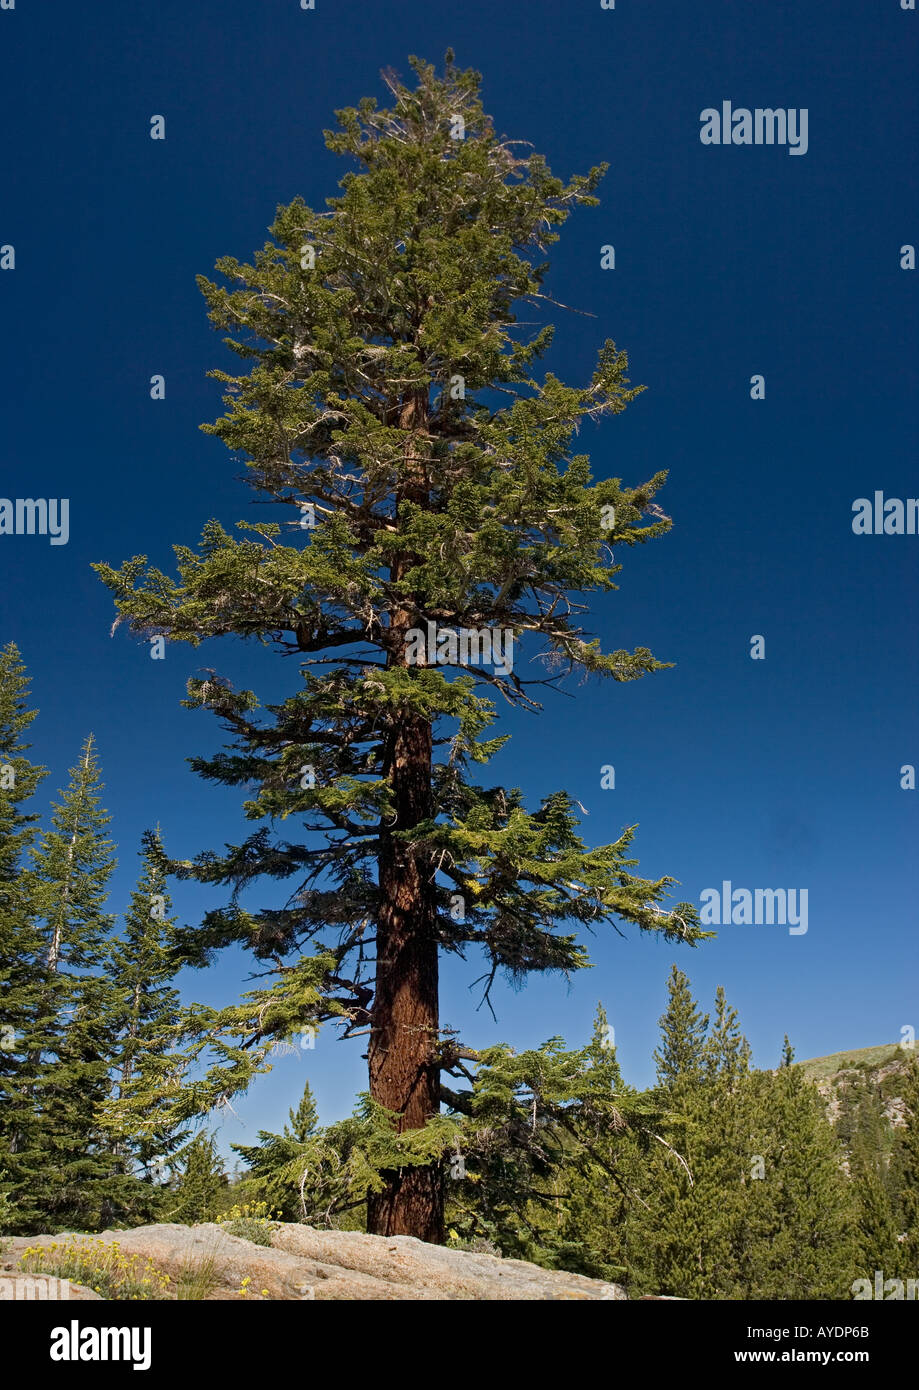 Red fir tree (Abies magnifica) at c 9500 ft in the Sierra Nevada, USA - Stock Image